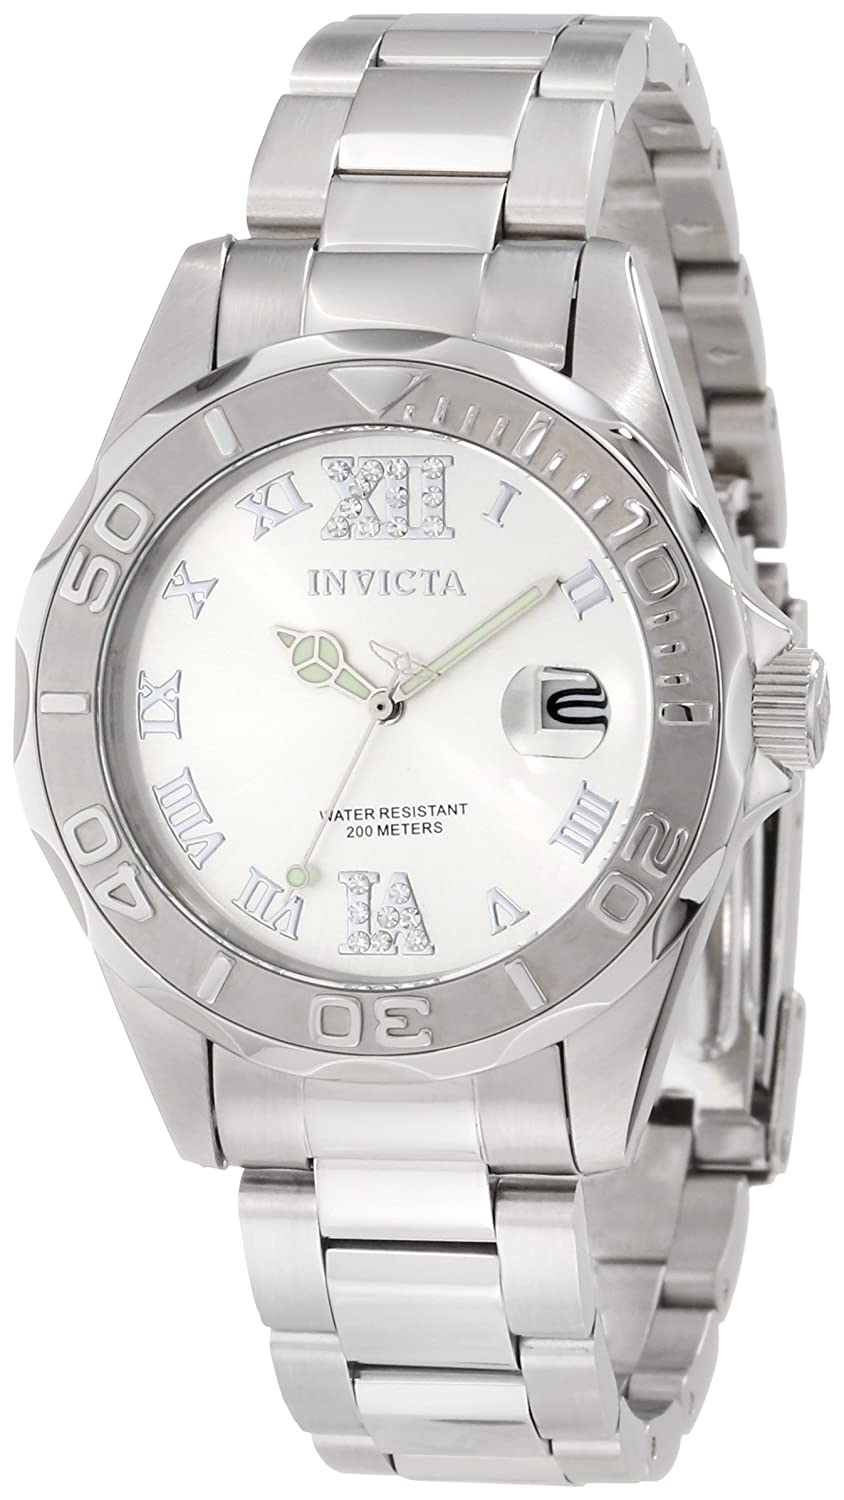 Invicta Women&#8217;s 12851 Pro Diver Silver Dial Watch with Crystal Accents $79.99